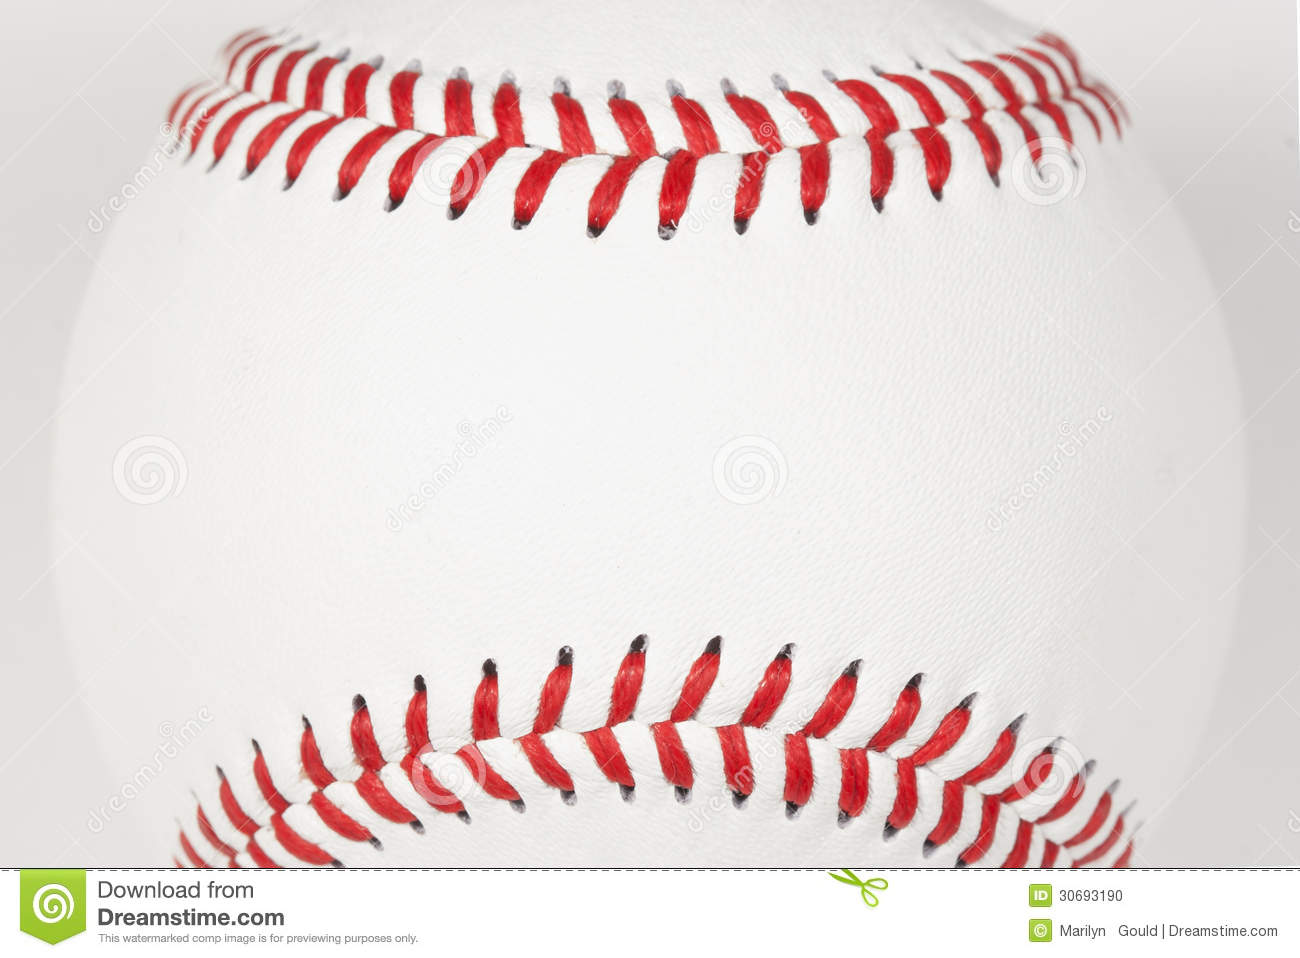 b2f3b9647705 The top and bottom red stitching of a baseball framing area for copy on  white leather baseball surface